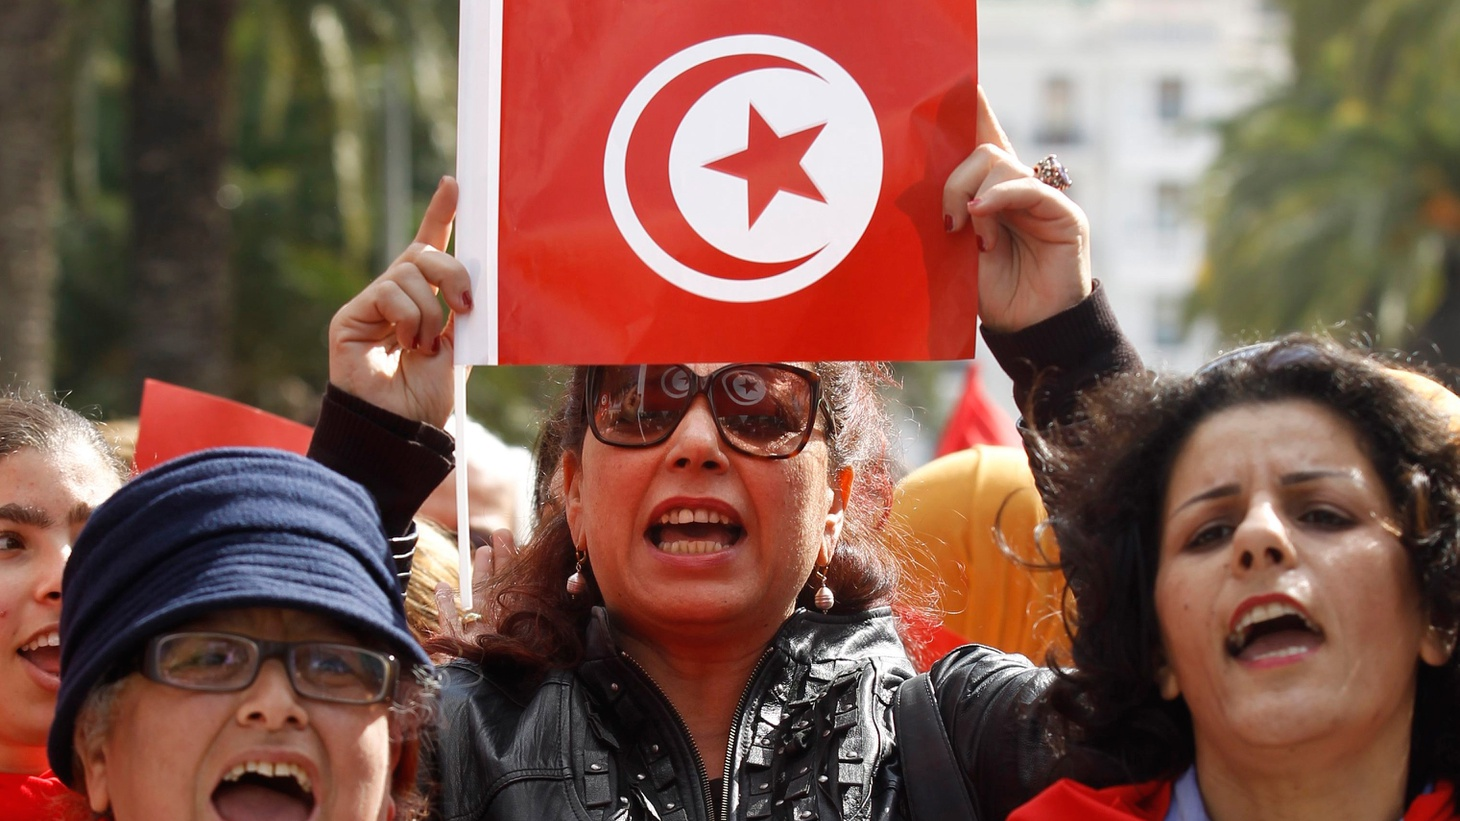 A Tunisian woman holds up a flag during a march to celebrate International Women's Day in Tunis March 8, 2014 Photo by Zoubeir Souissi/Reuters   Tunisia has been a pioneer for women's rights in the Arab World since 1956, when it approved divorce and outlawed polygamy. Now, it's taken another major step forward with new protections against…